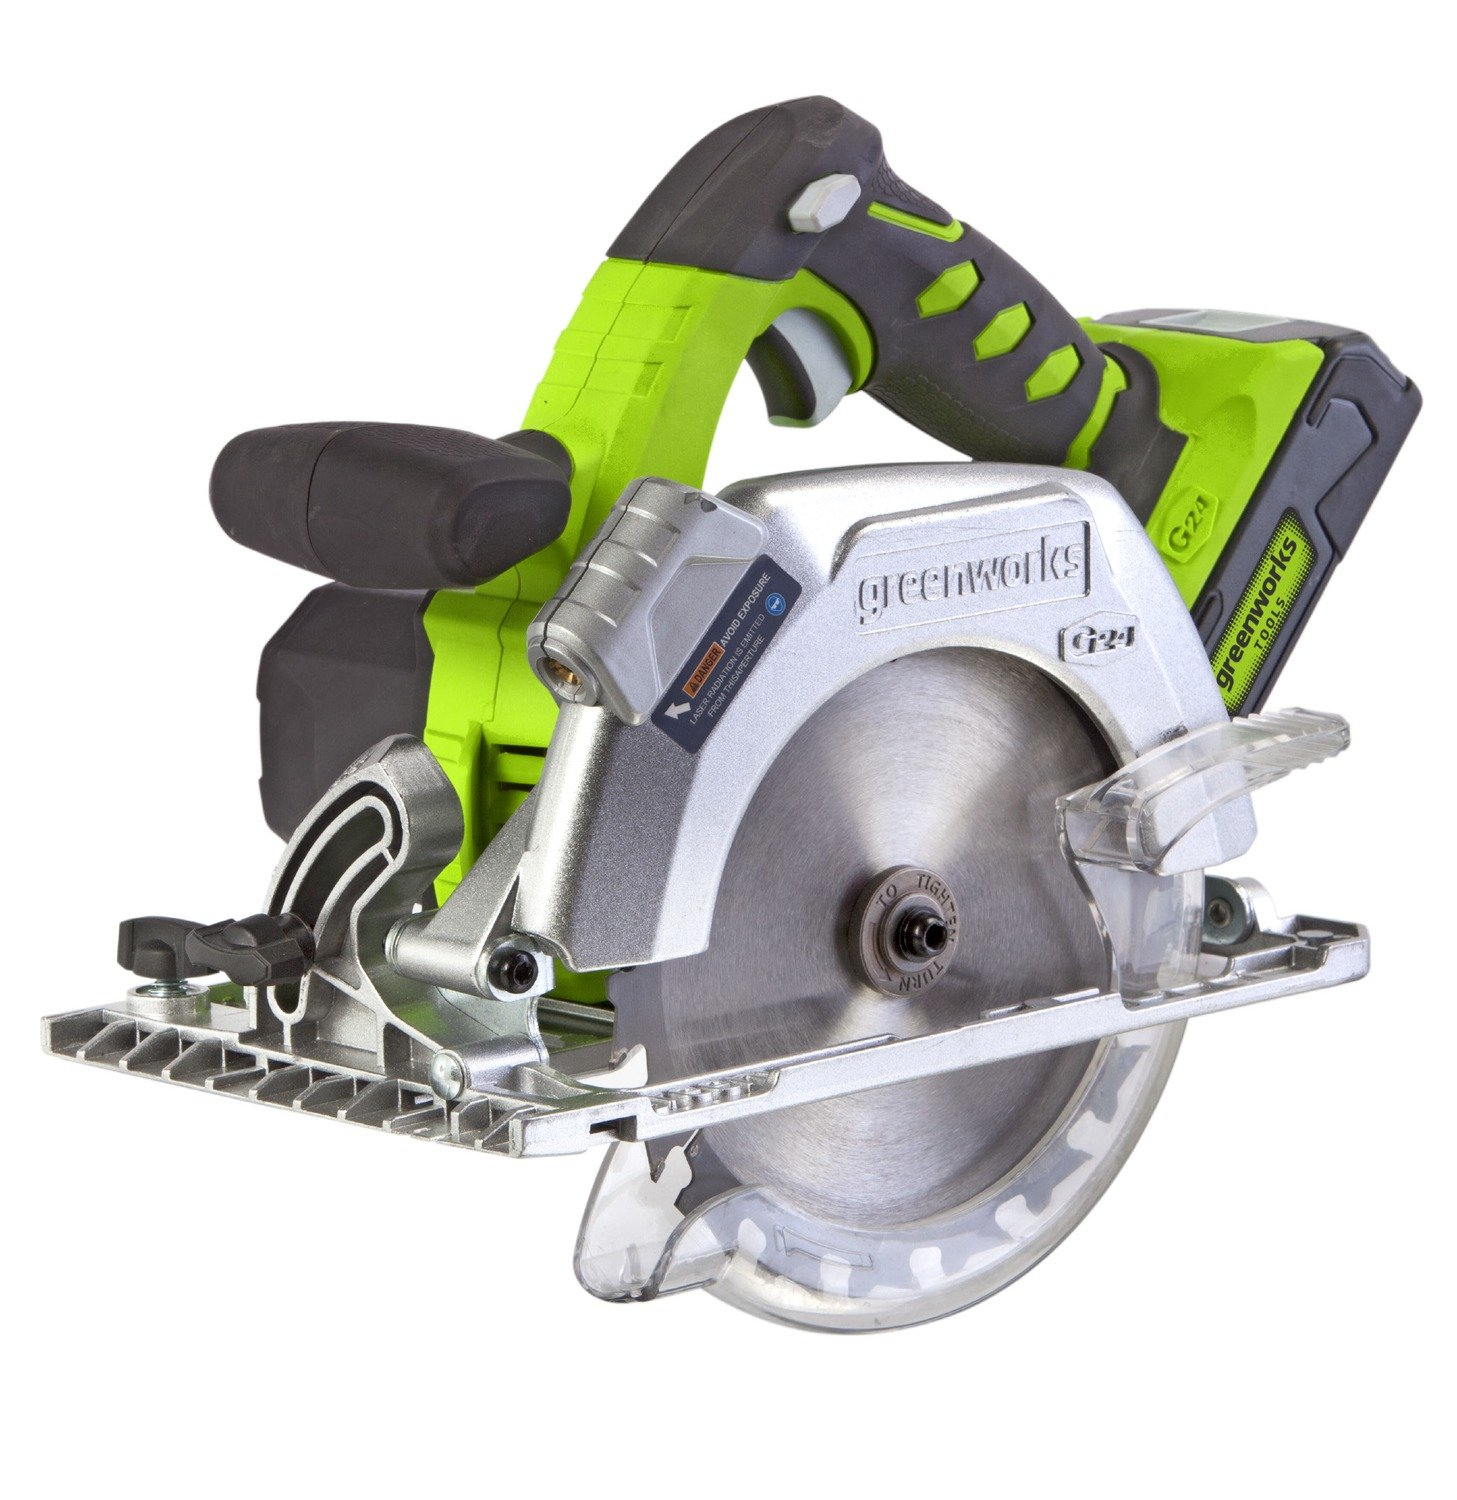 Greenworks Scie circulaire 24V Lithium-ion 1500507 sans batterie ni chargeur